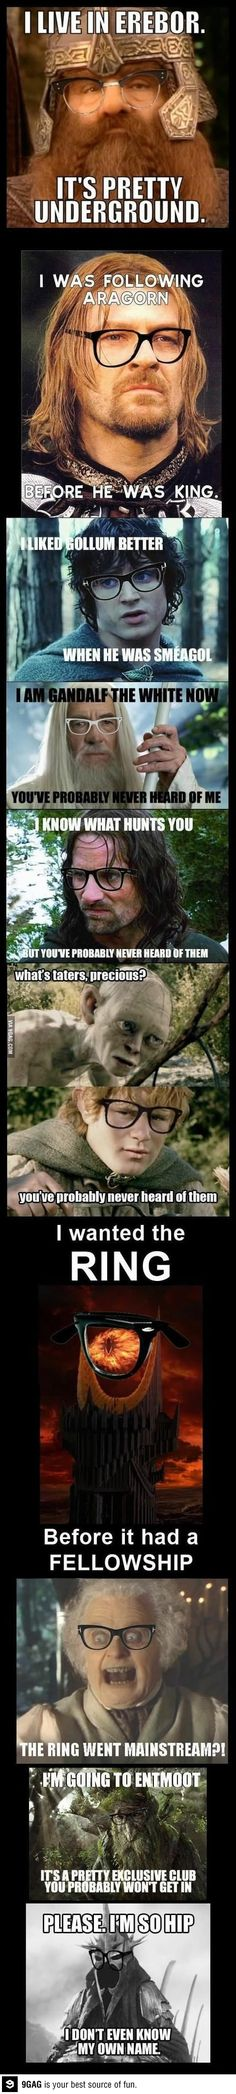 Hipster Lord of the Rings